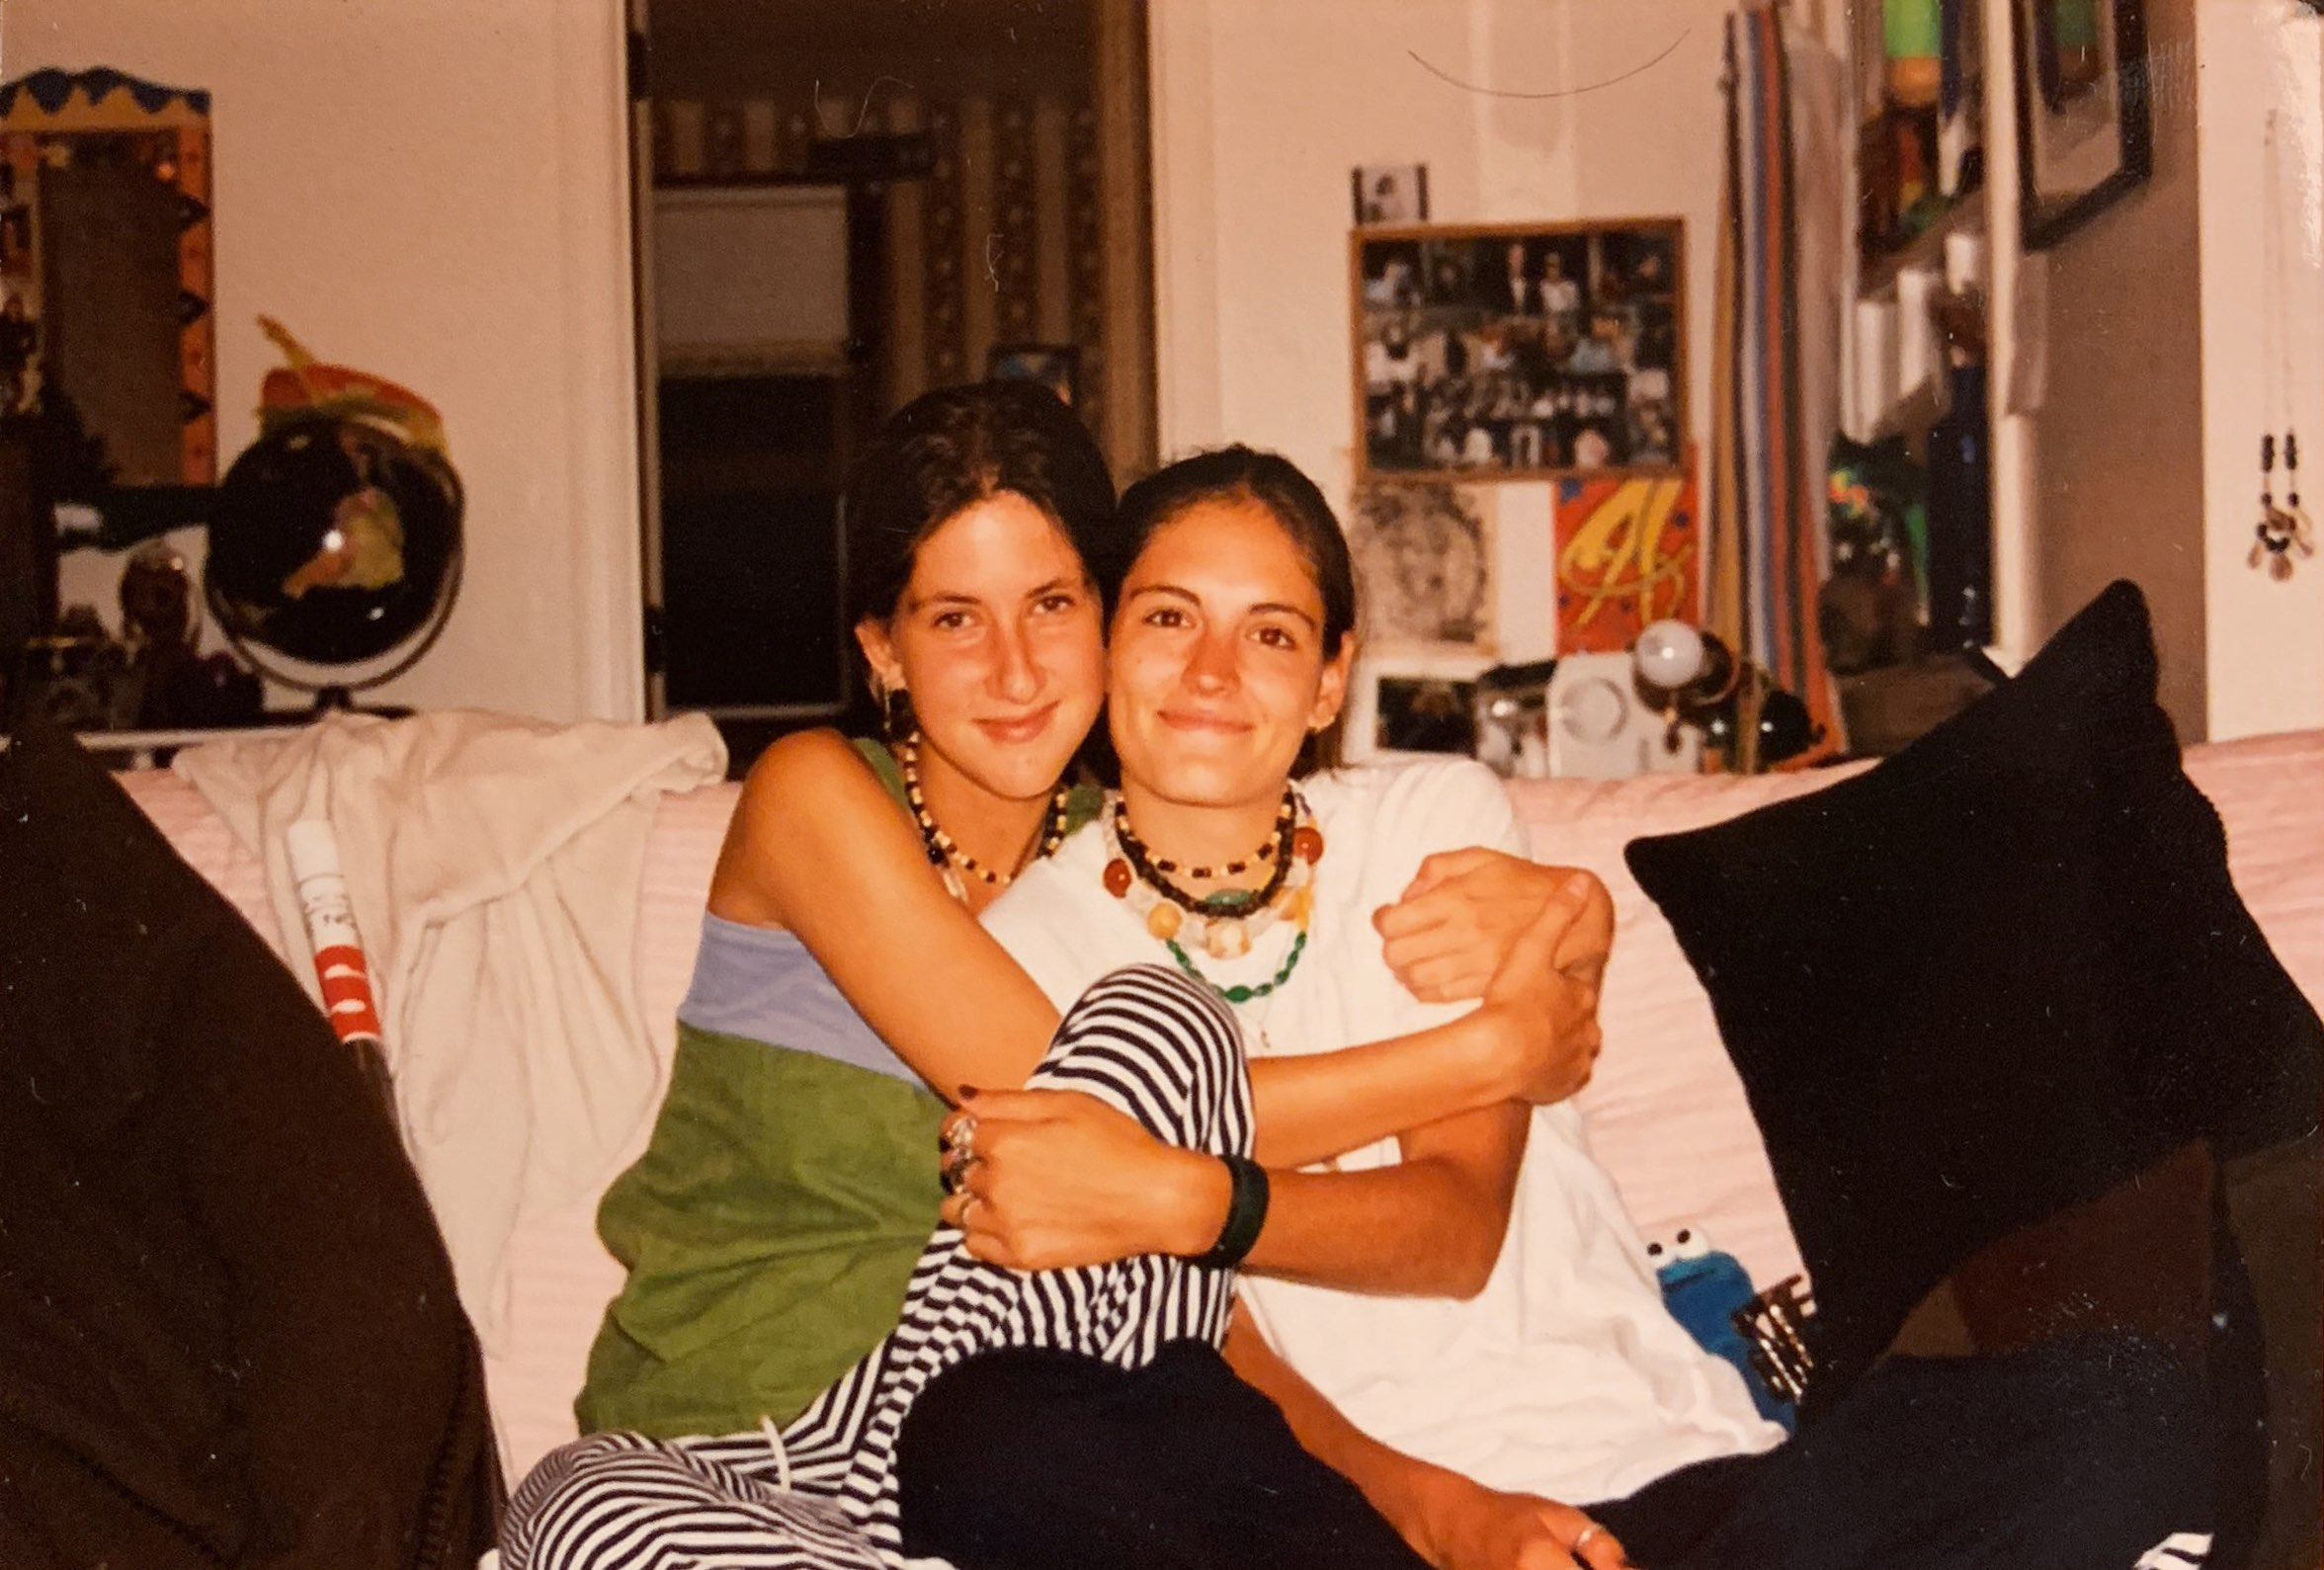 Maggie and Haystack Stories co-founder Jayna in 1997 (and a whole lot of necklaces).